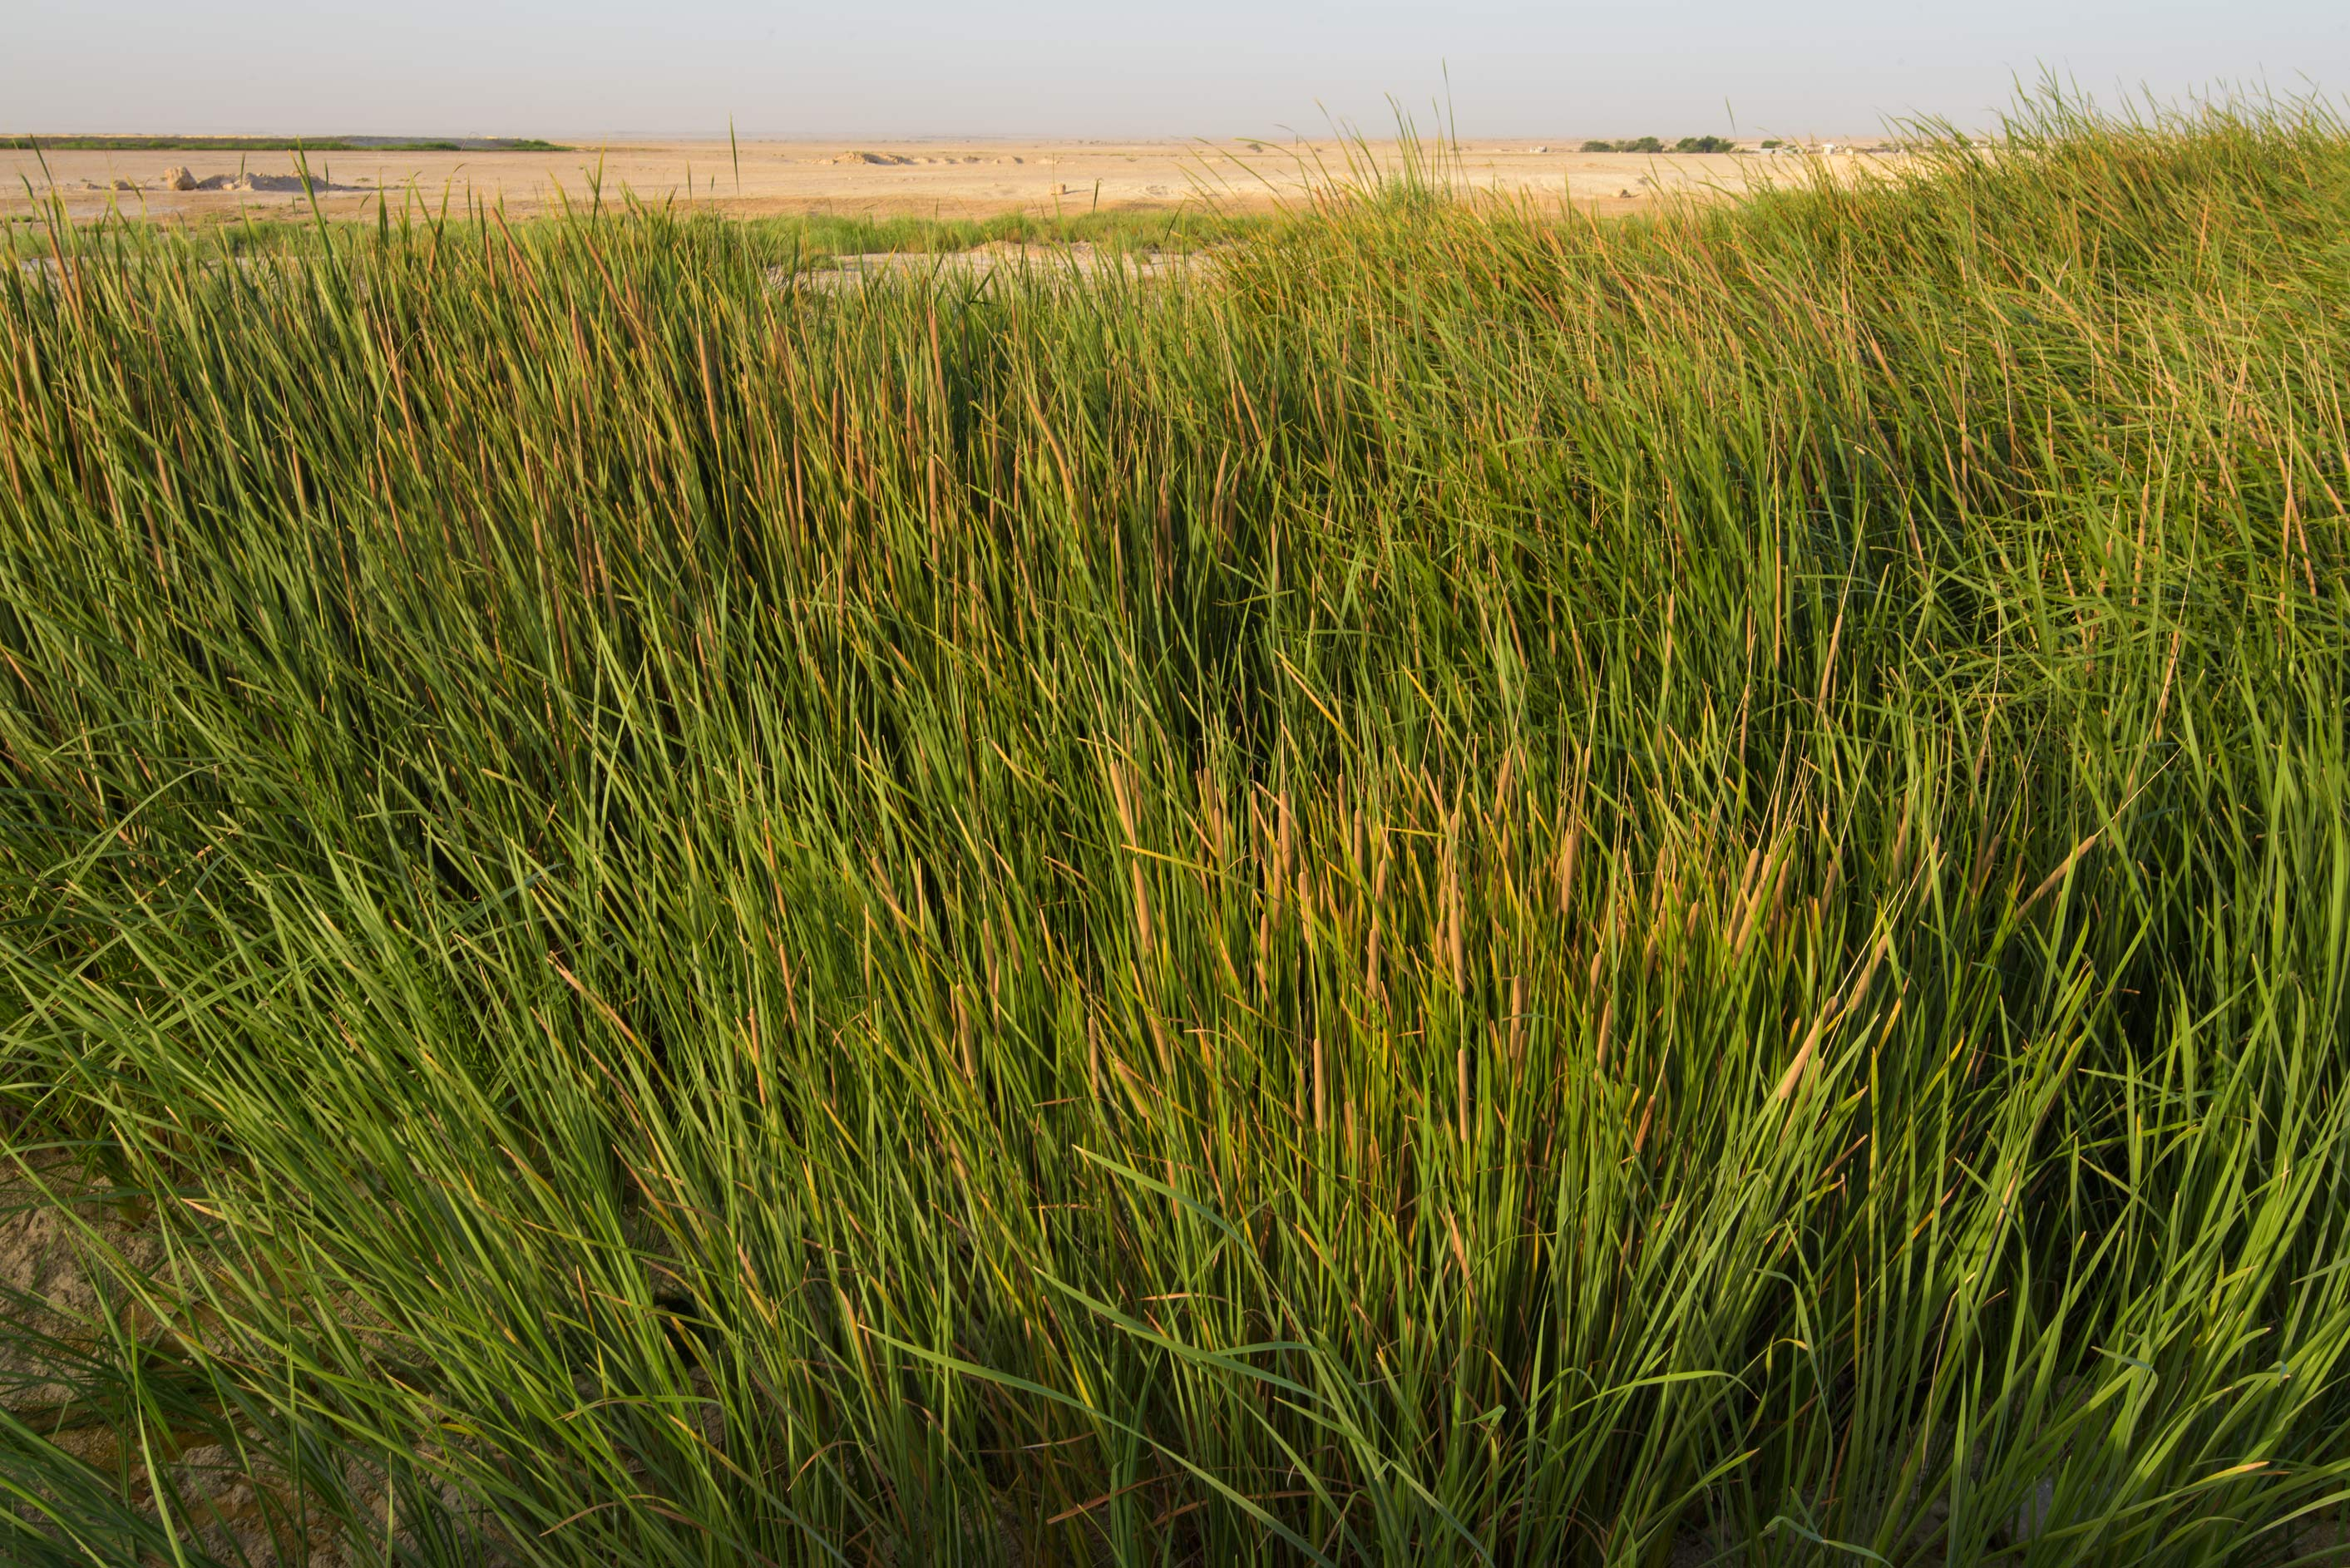 Masses of Southern cattail (Typha domingensis) in...near Irkhaya (Irkaya) Farms. Qatar